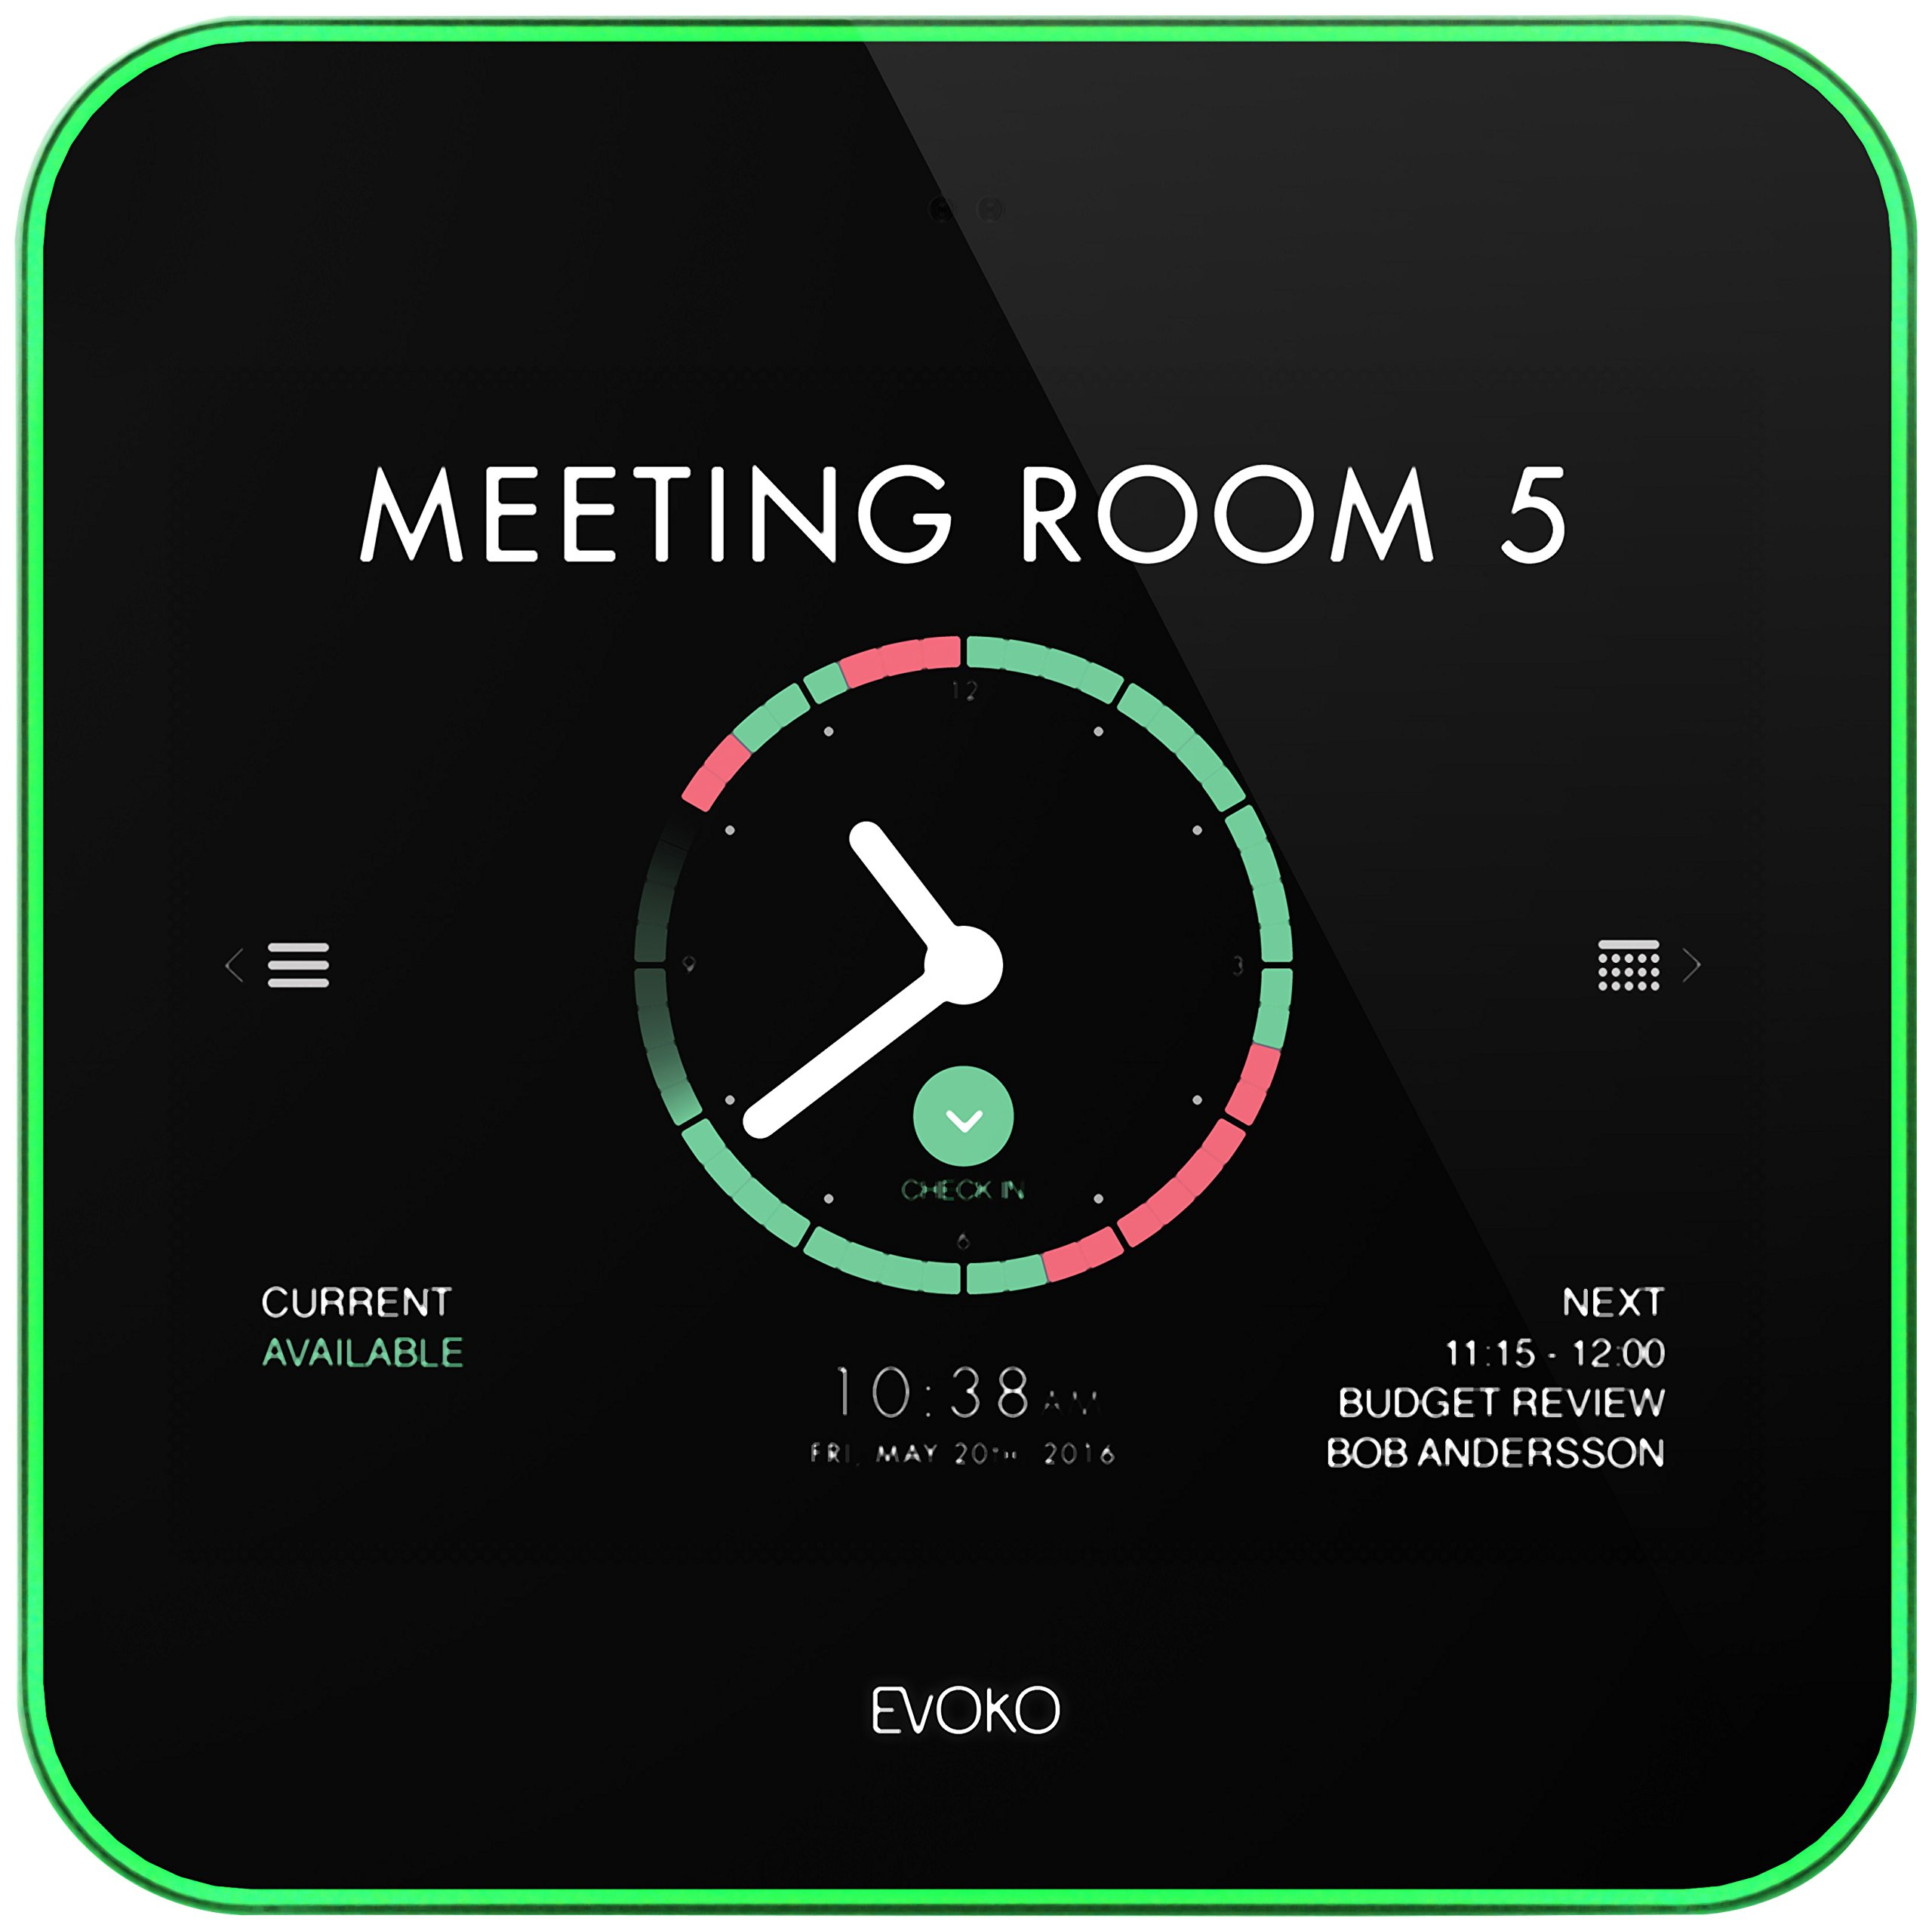 Evoko Liso Room Manager 8 touch incl. wall- and glasmount, ERM2001 (incl. wall- and glasmount Device Input Power Sources: PoE Í 48 V DC by RJ45. NB, No PSU included)